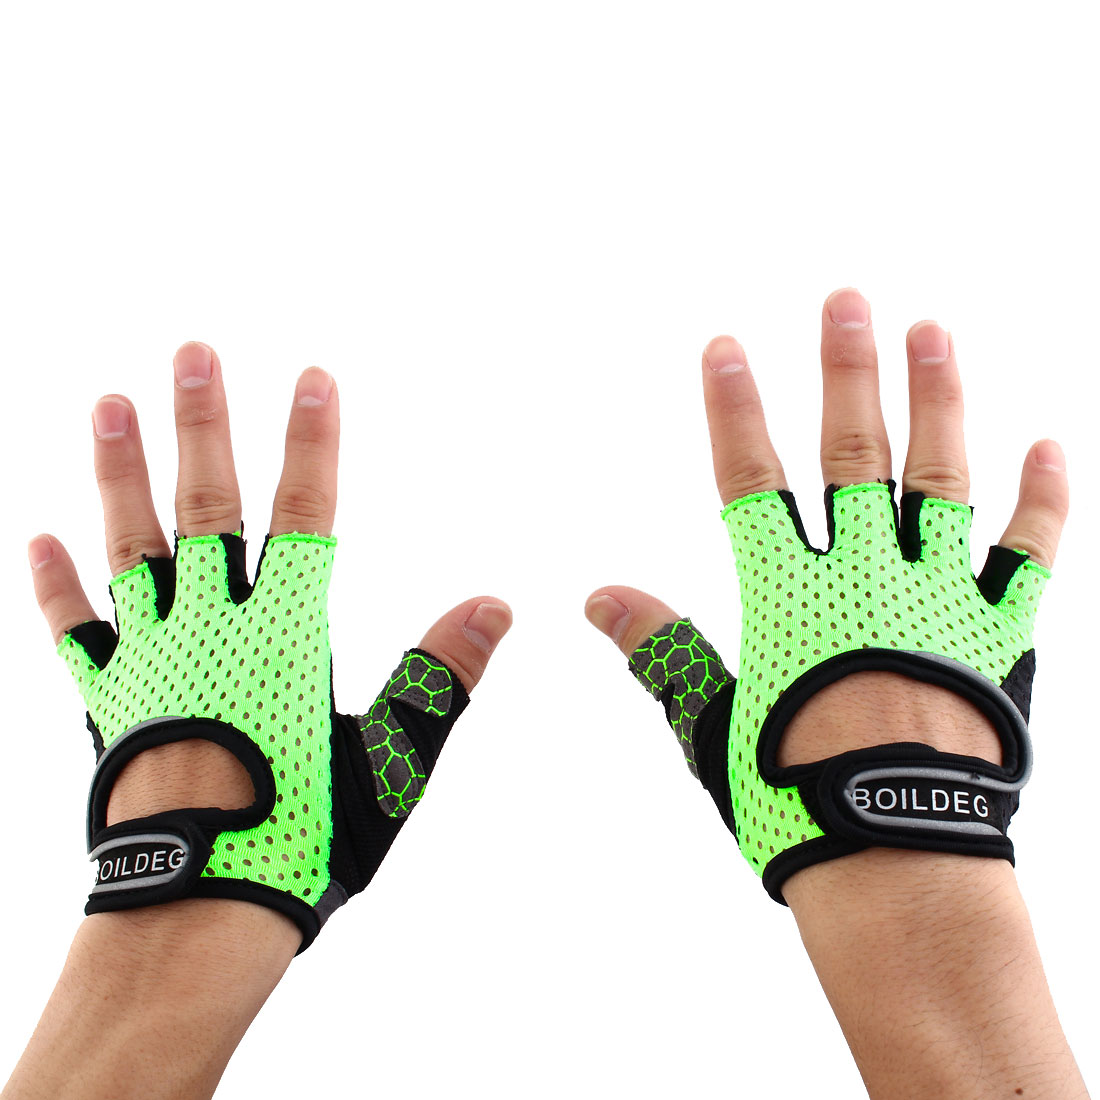 BOILDEG Authorized Unisex Sports Weight Fitness Exercise Workout Breathable Palm Support Gloves Green Size L Pair